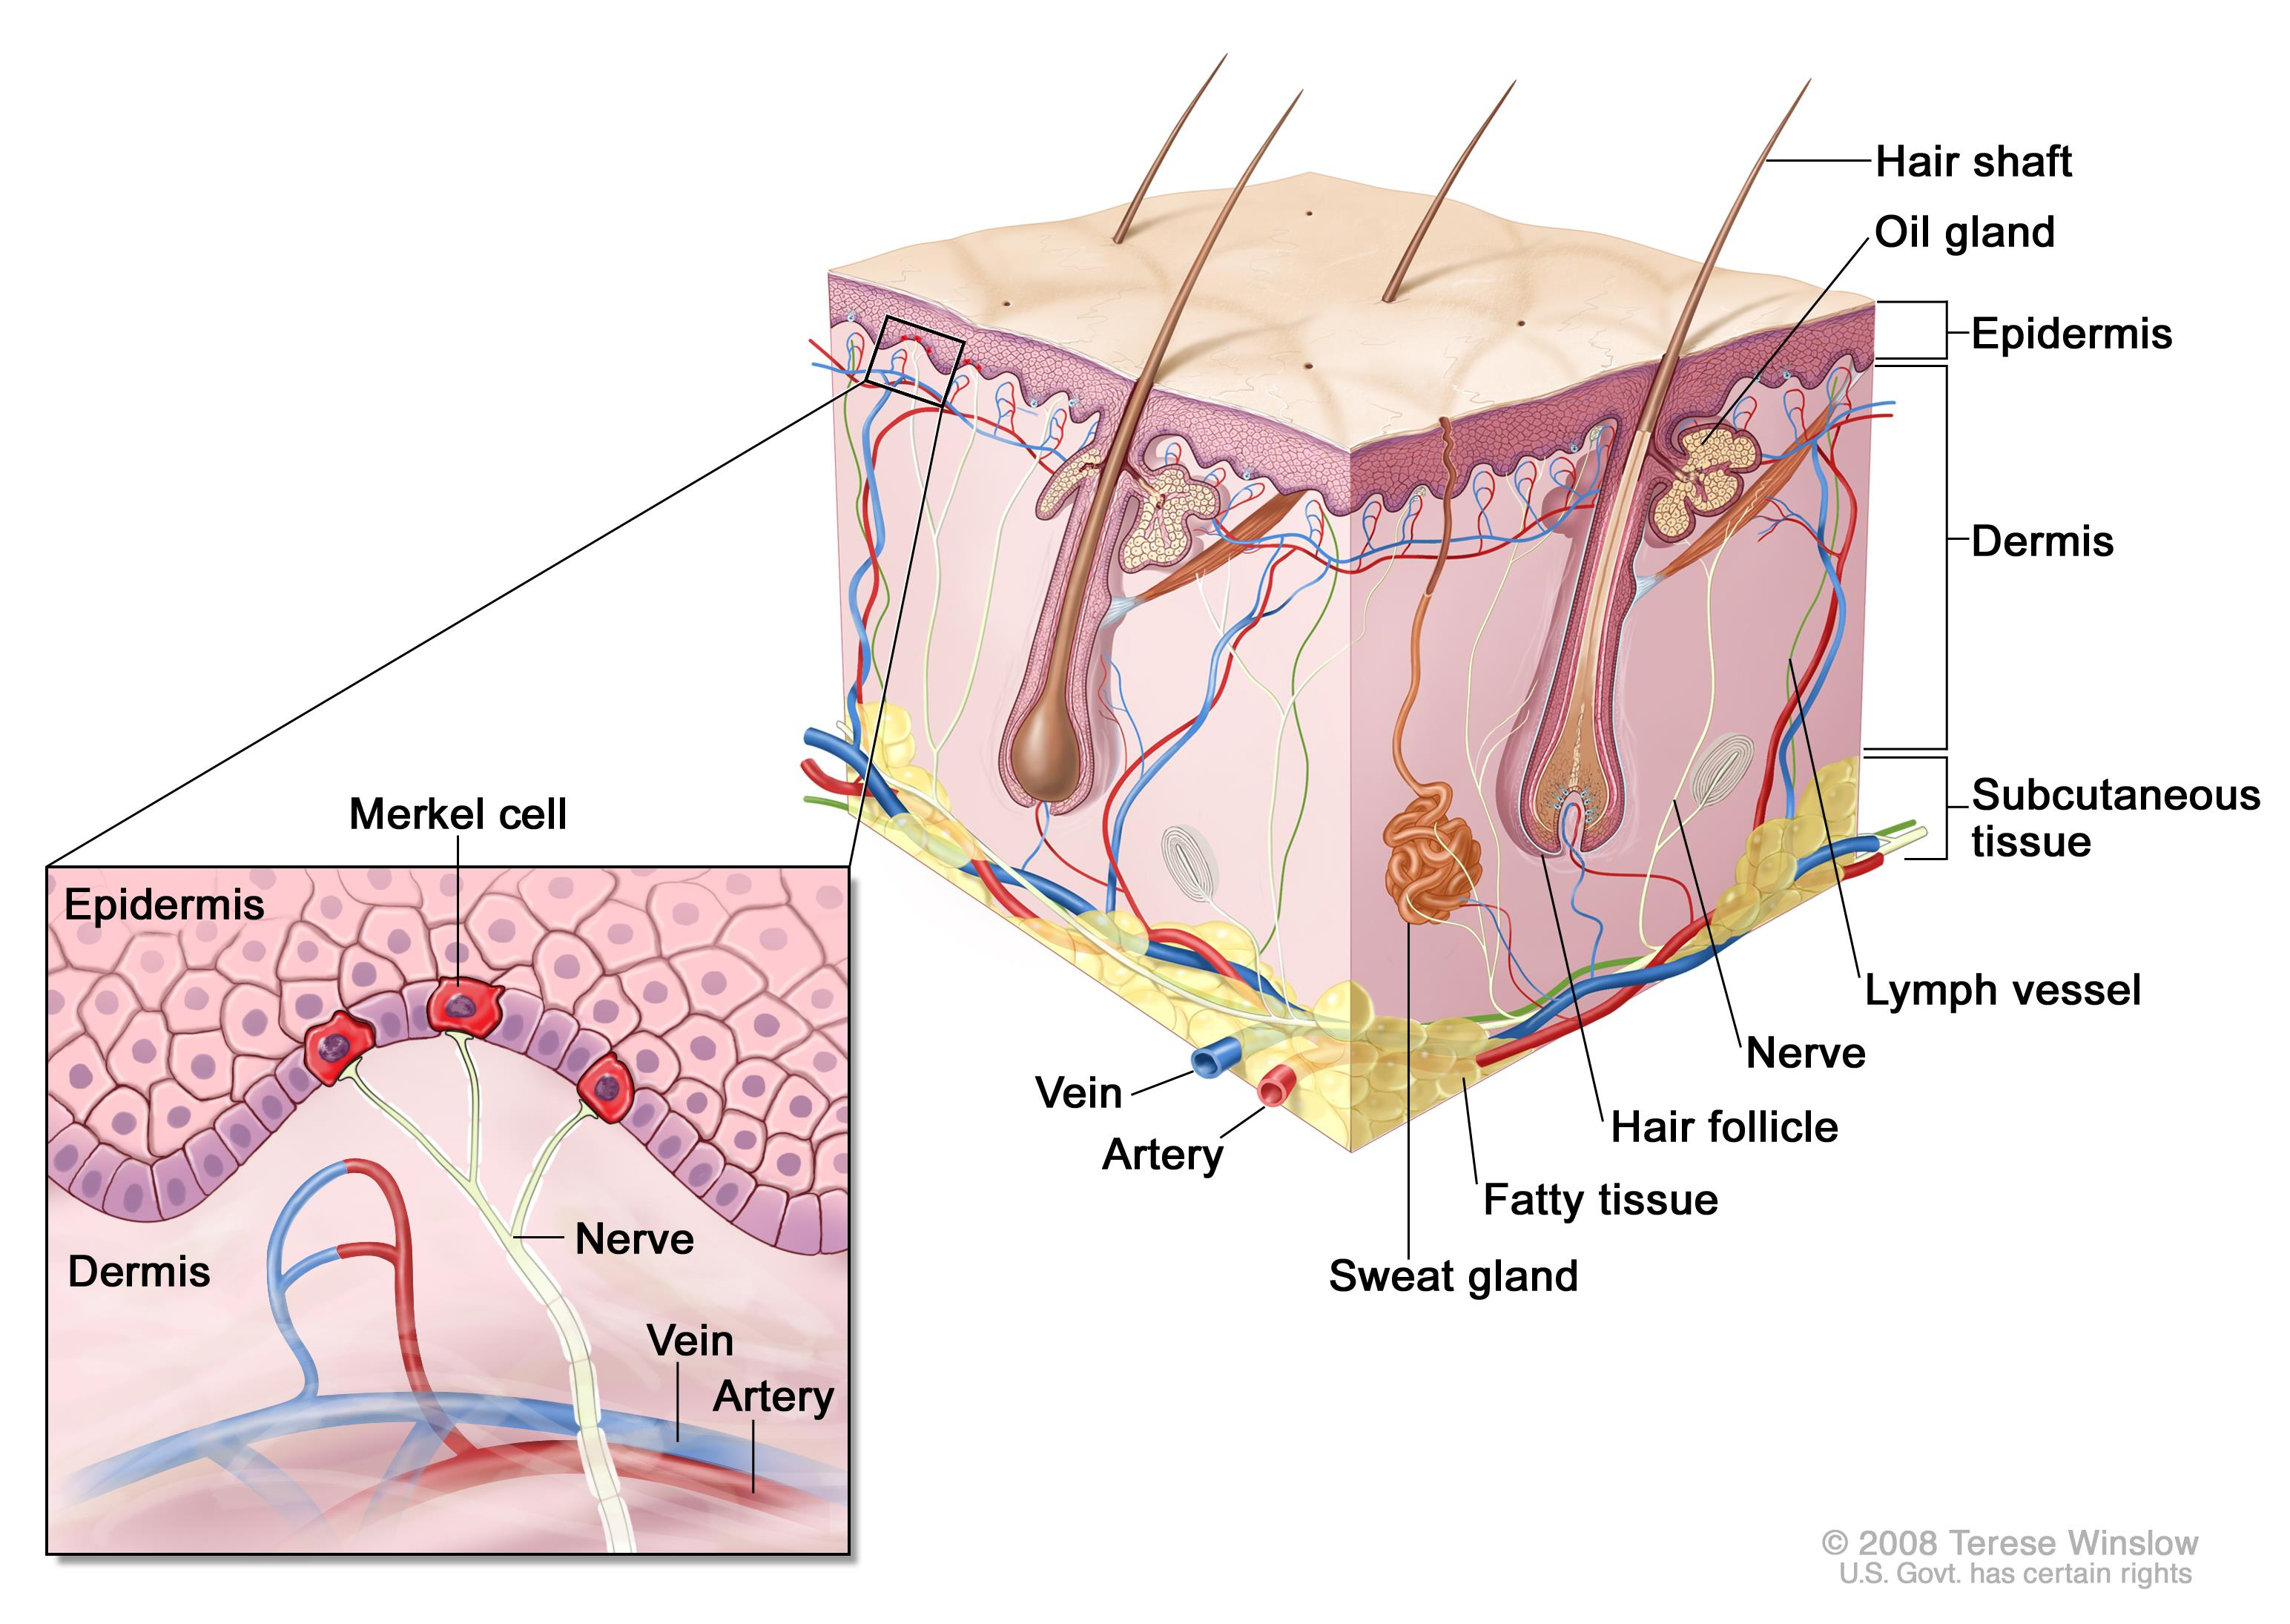 parts of the eyelid diagram ac solid state relay wiring merkel cell carcinoma treatment (pdq®)—health professional version - national cancer institute